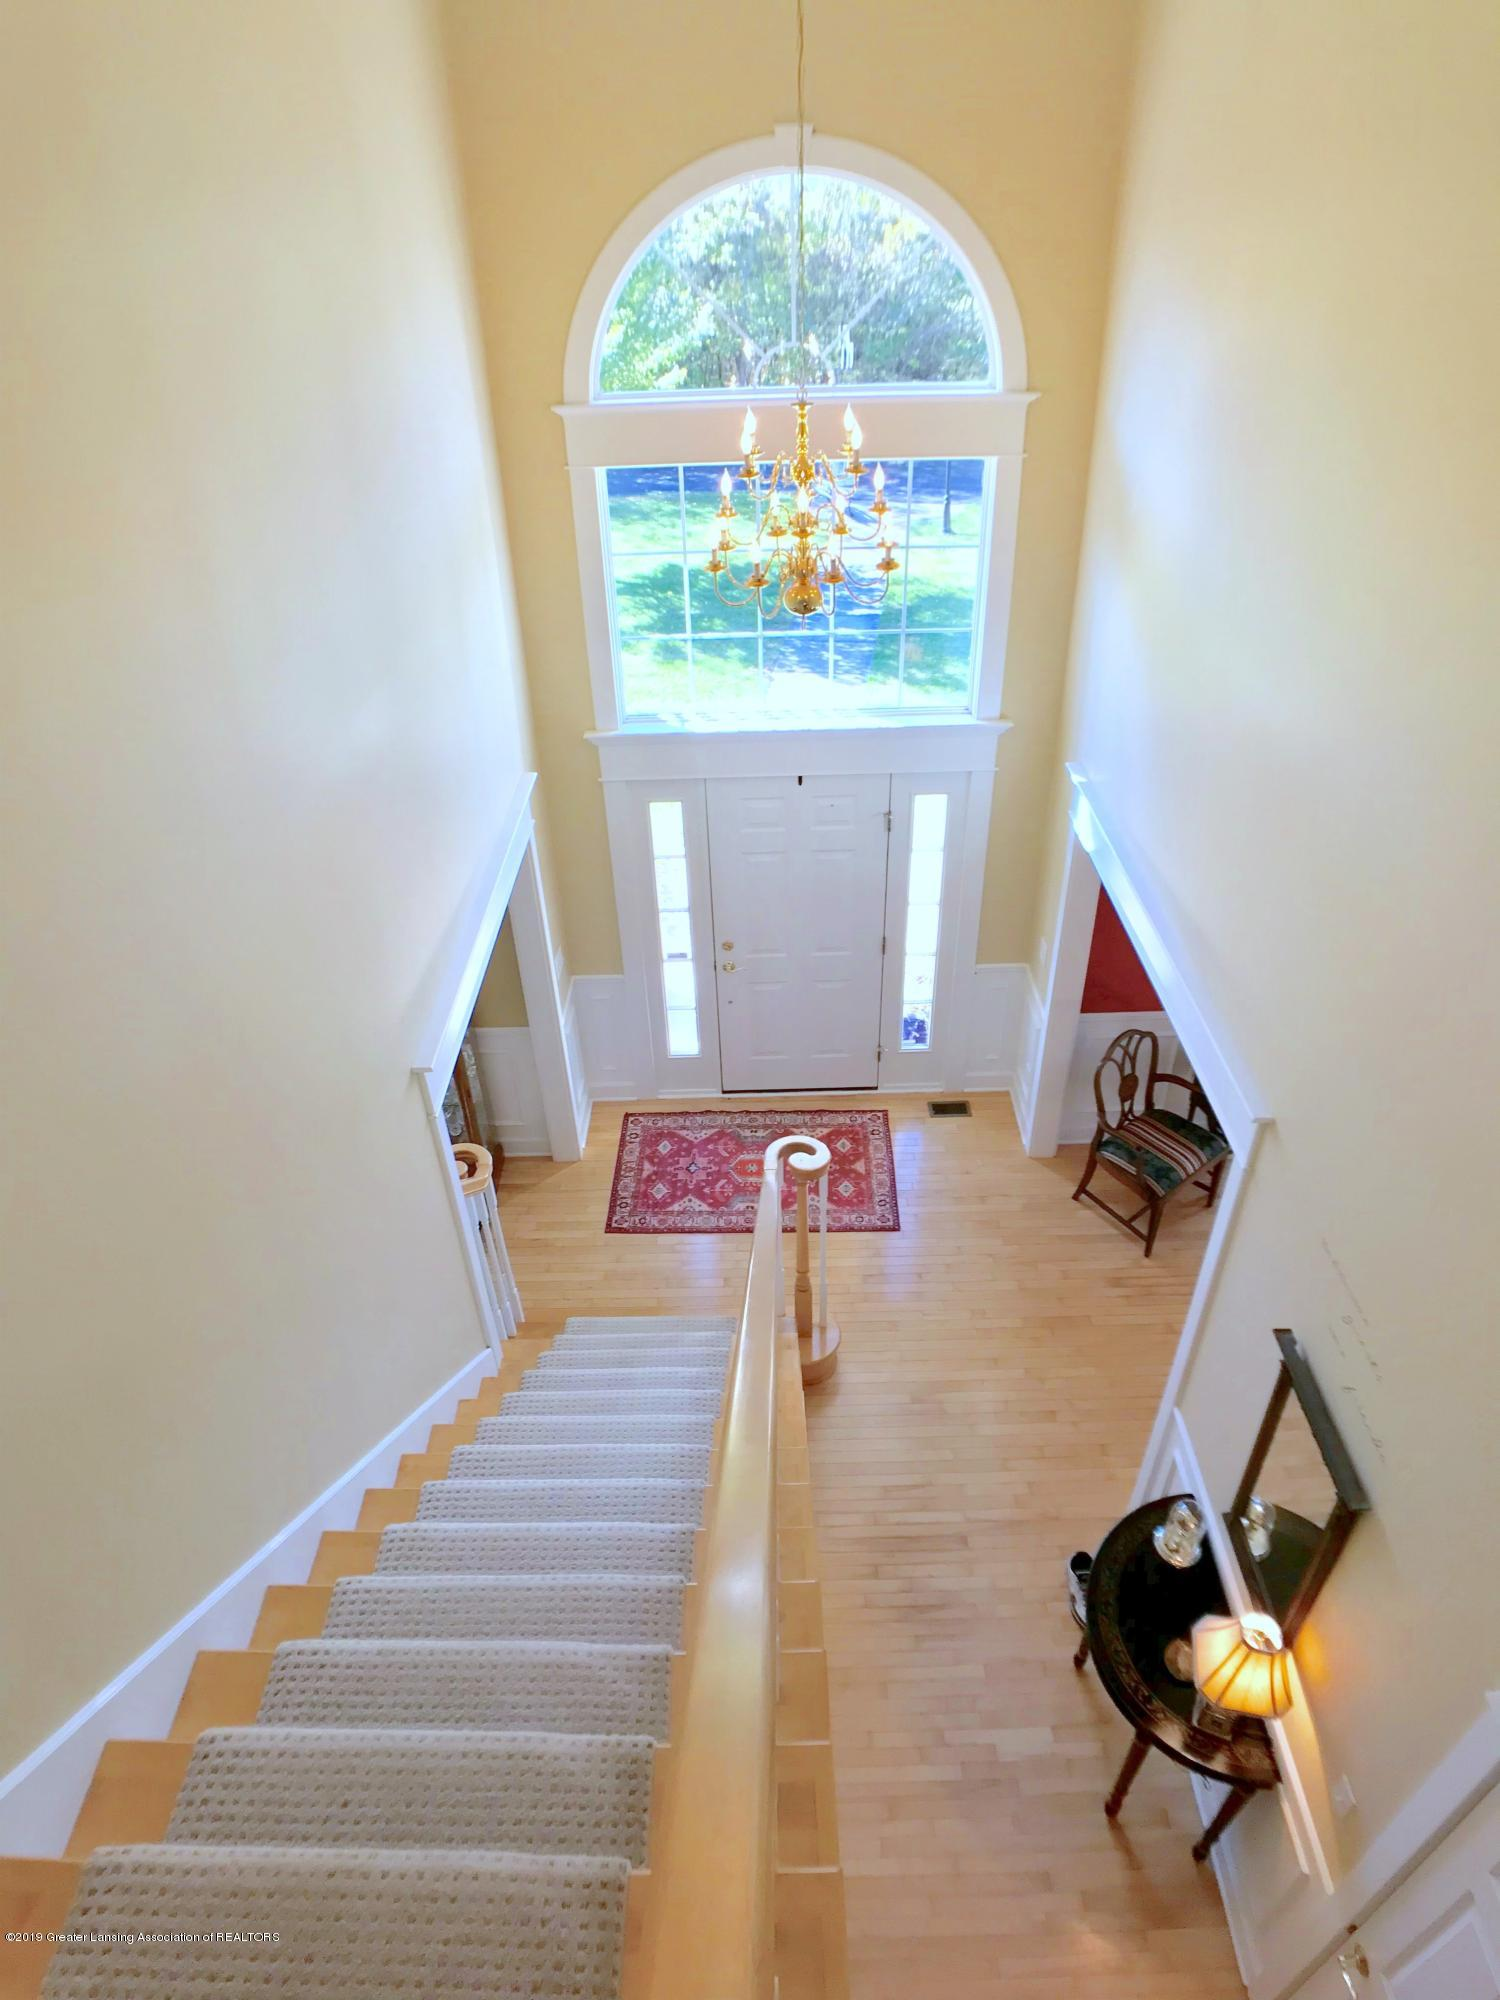 6430 Quail Ridge Ln - Foyer - 5